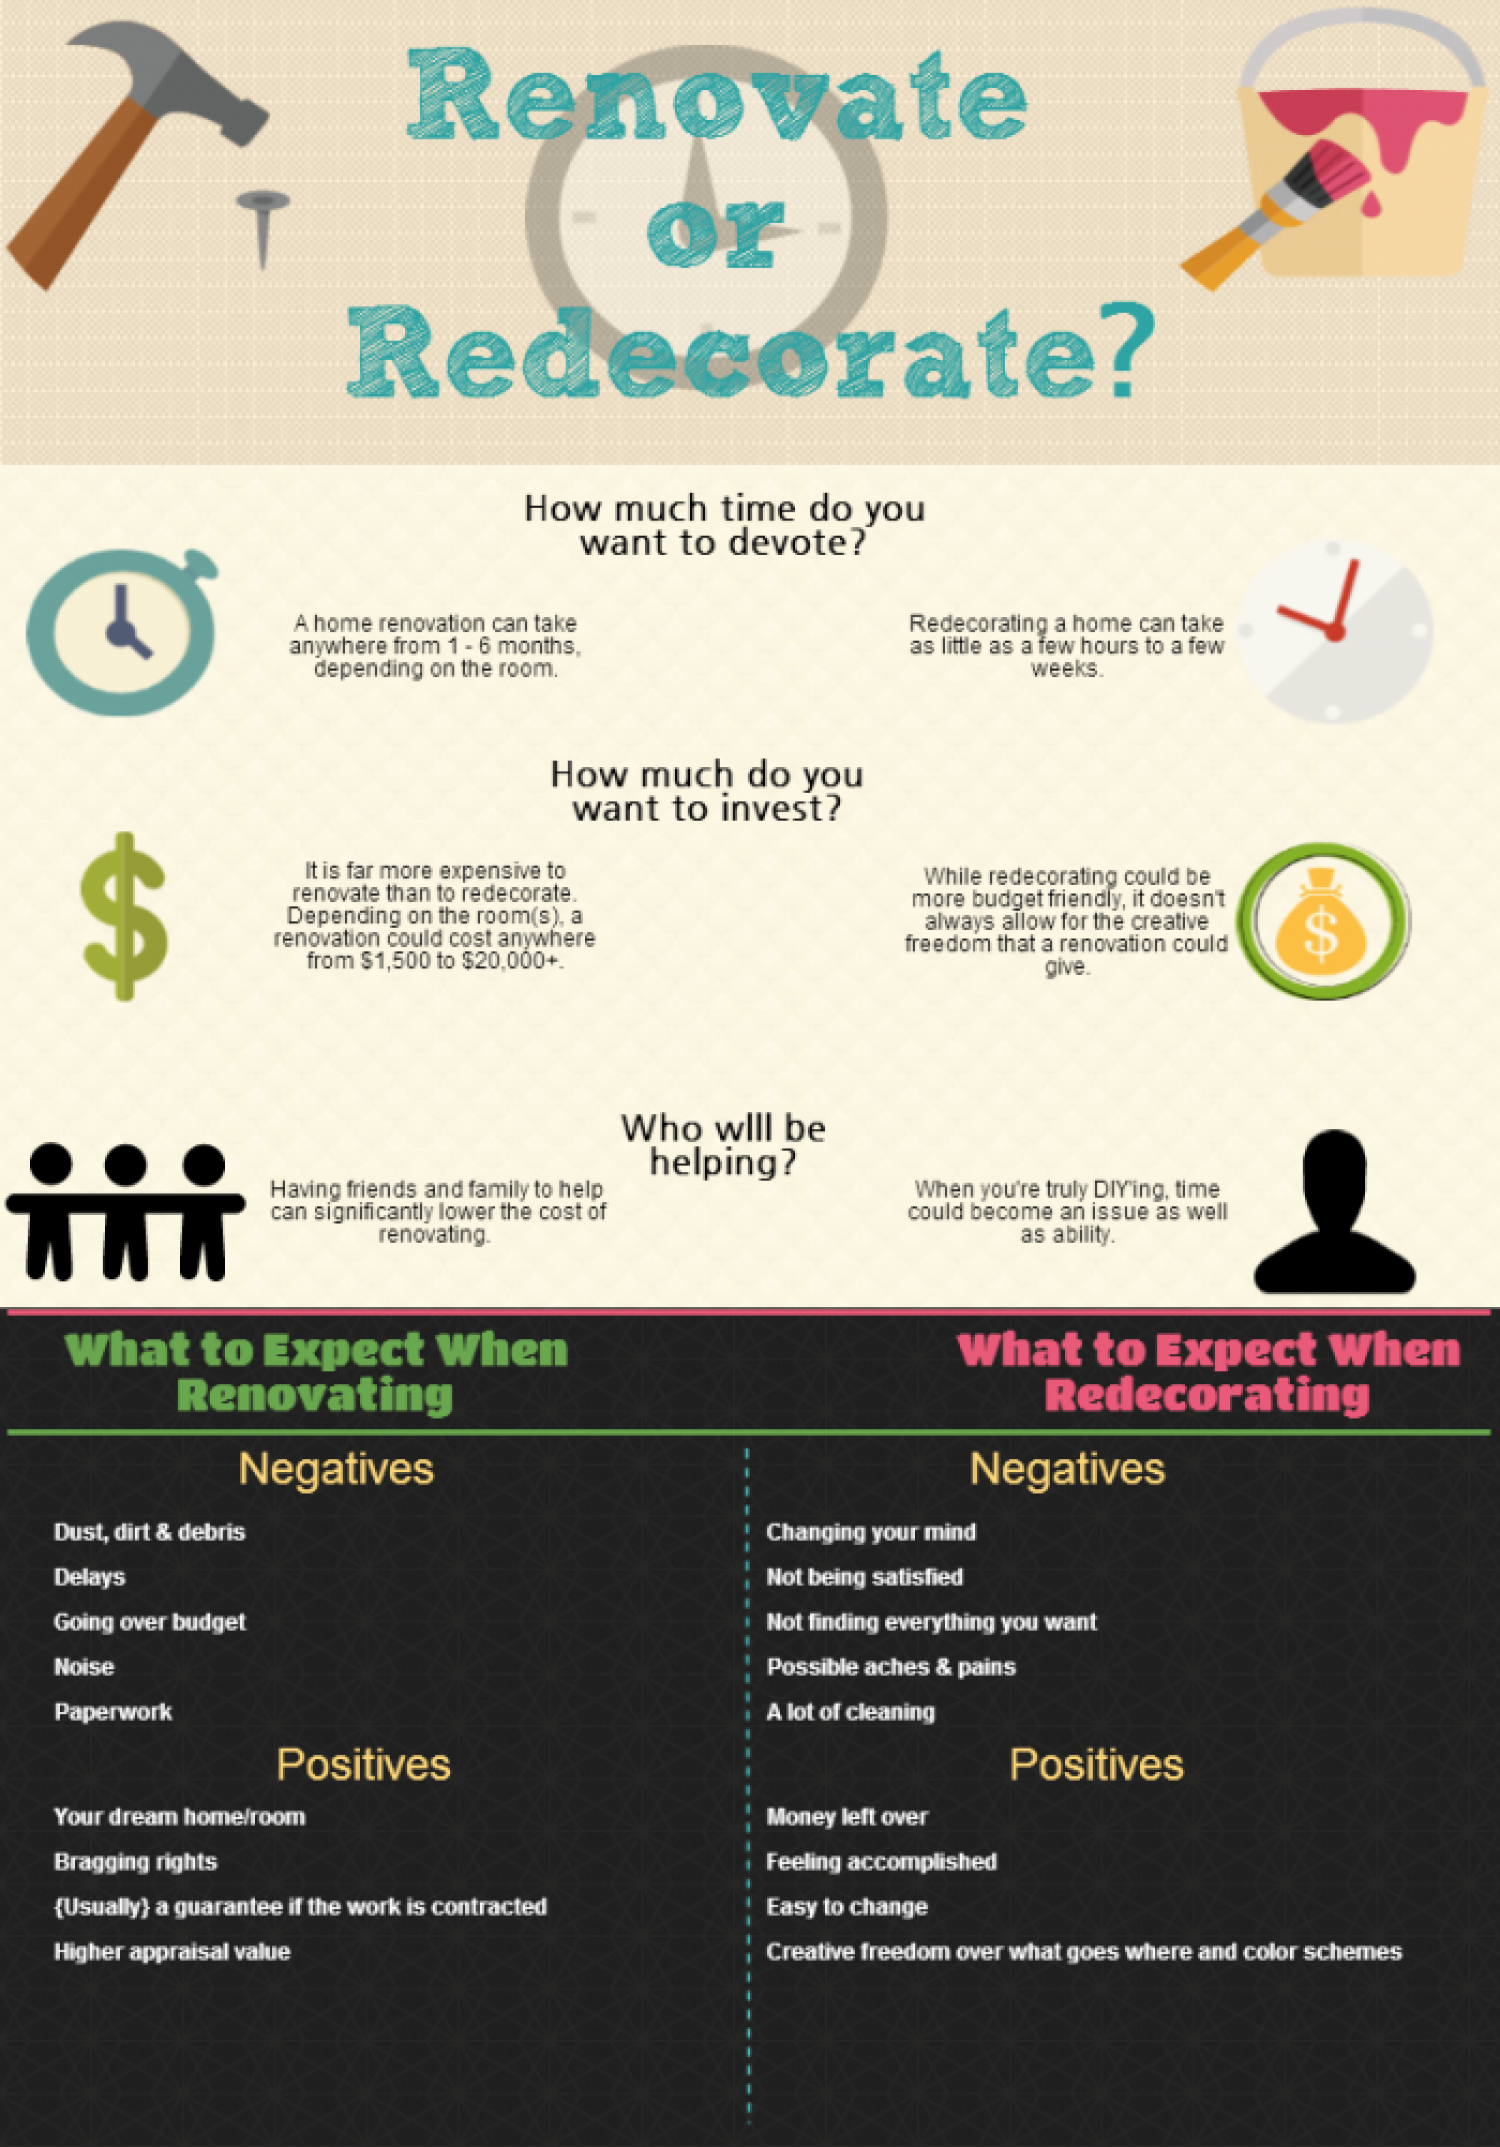 Renovate or Redecorate - Which is Right for You? Infographic